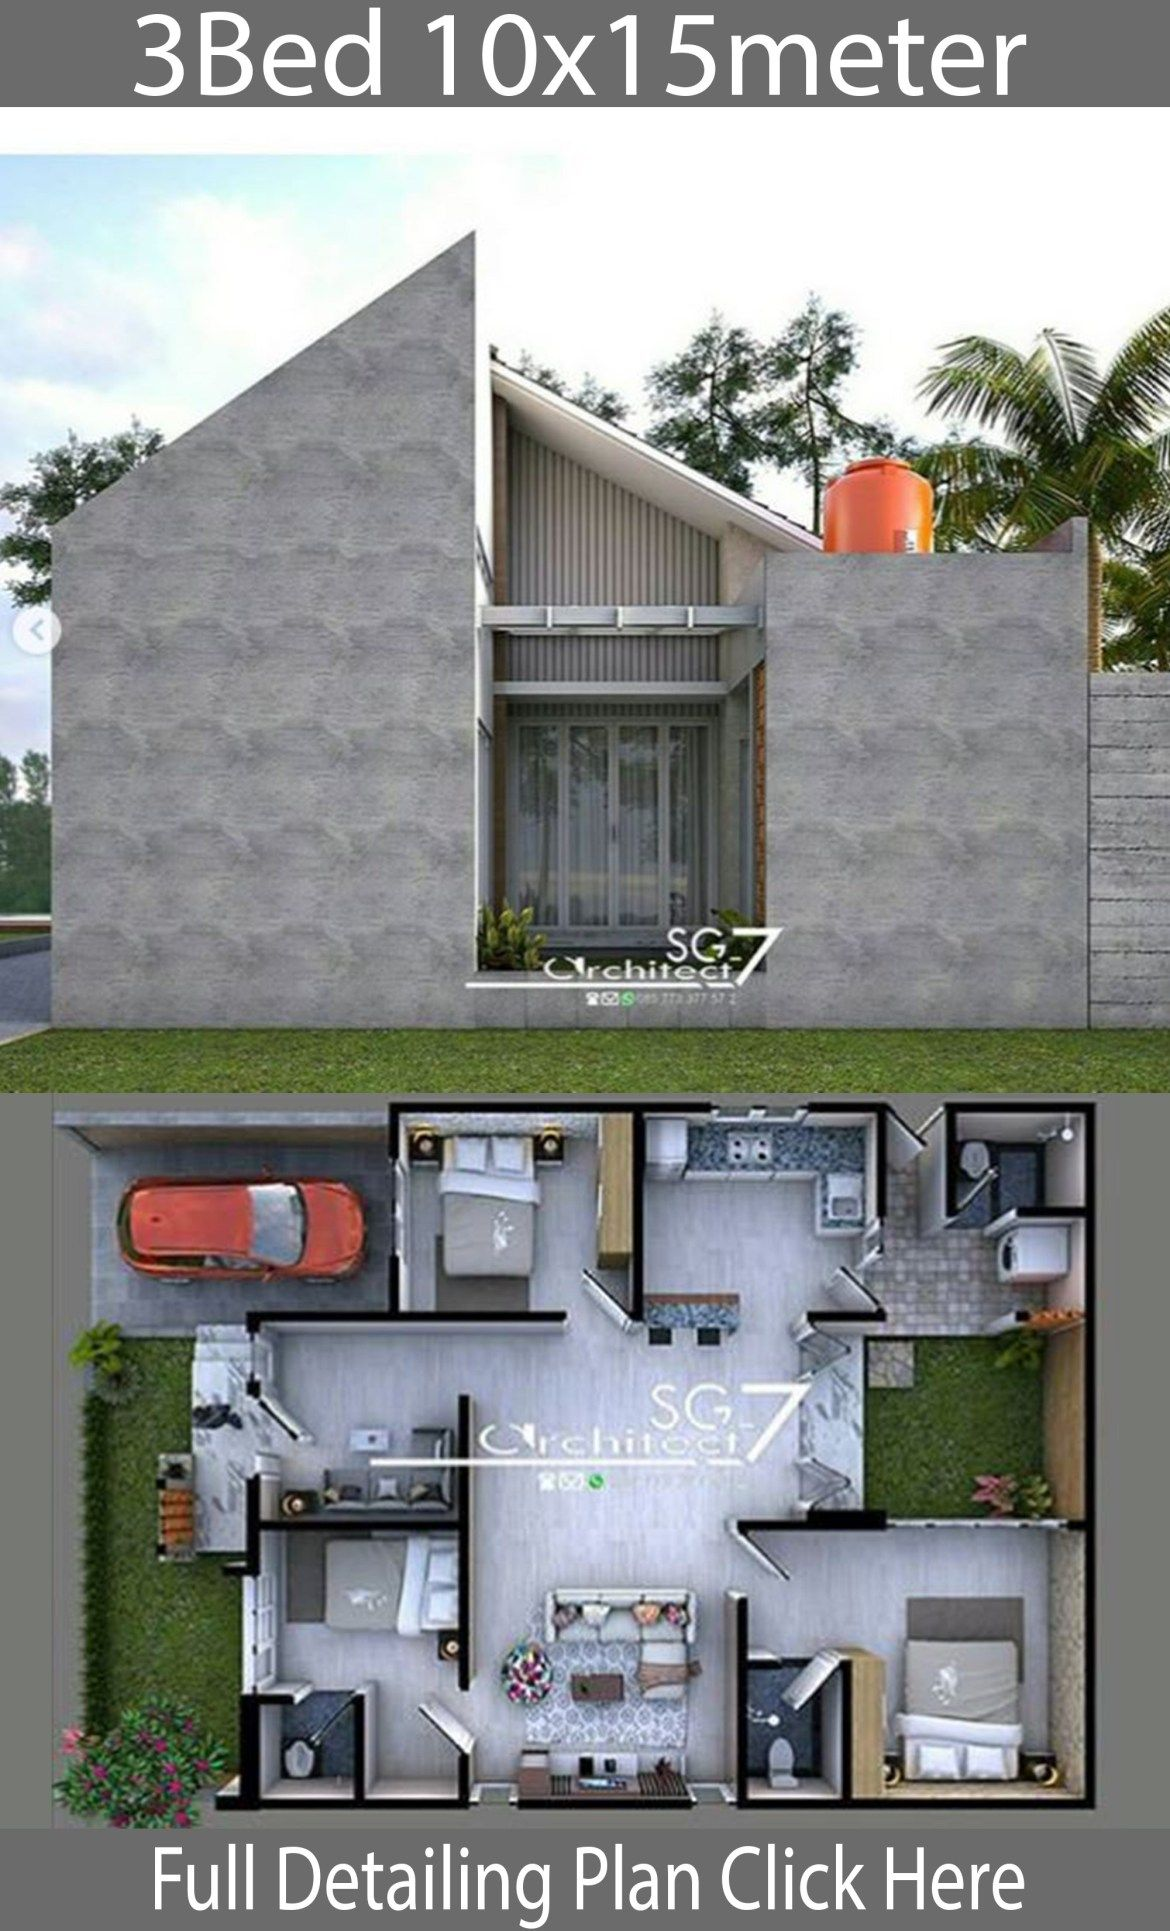 3 Bedrooms Home Design Plan 10x15m Home Design With Plansearch Home Design Plan House Design Bungalow House Design